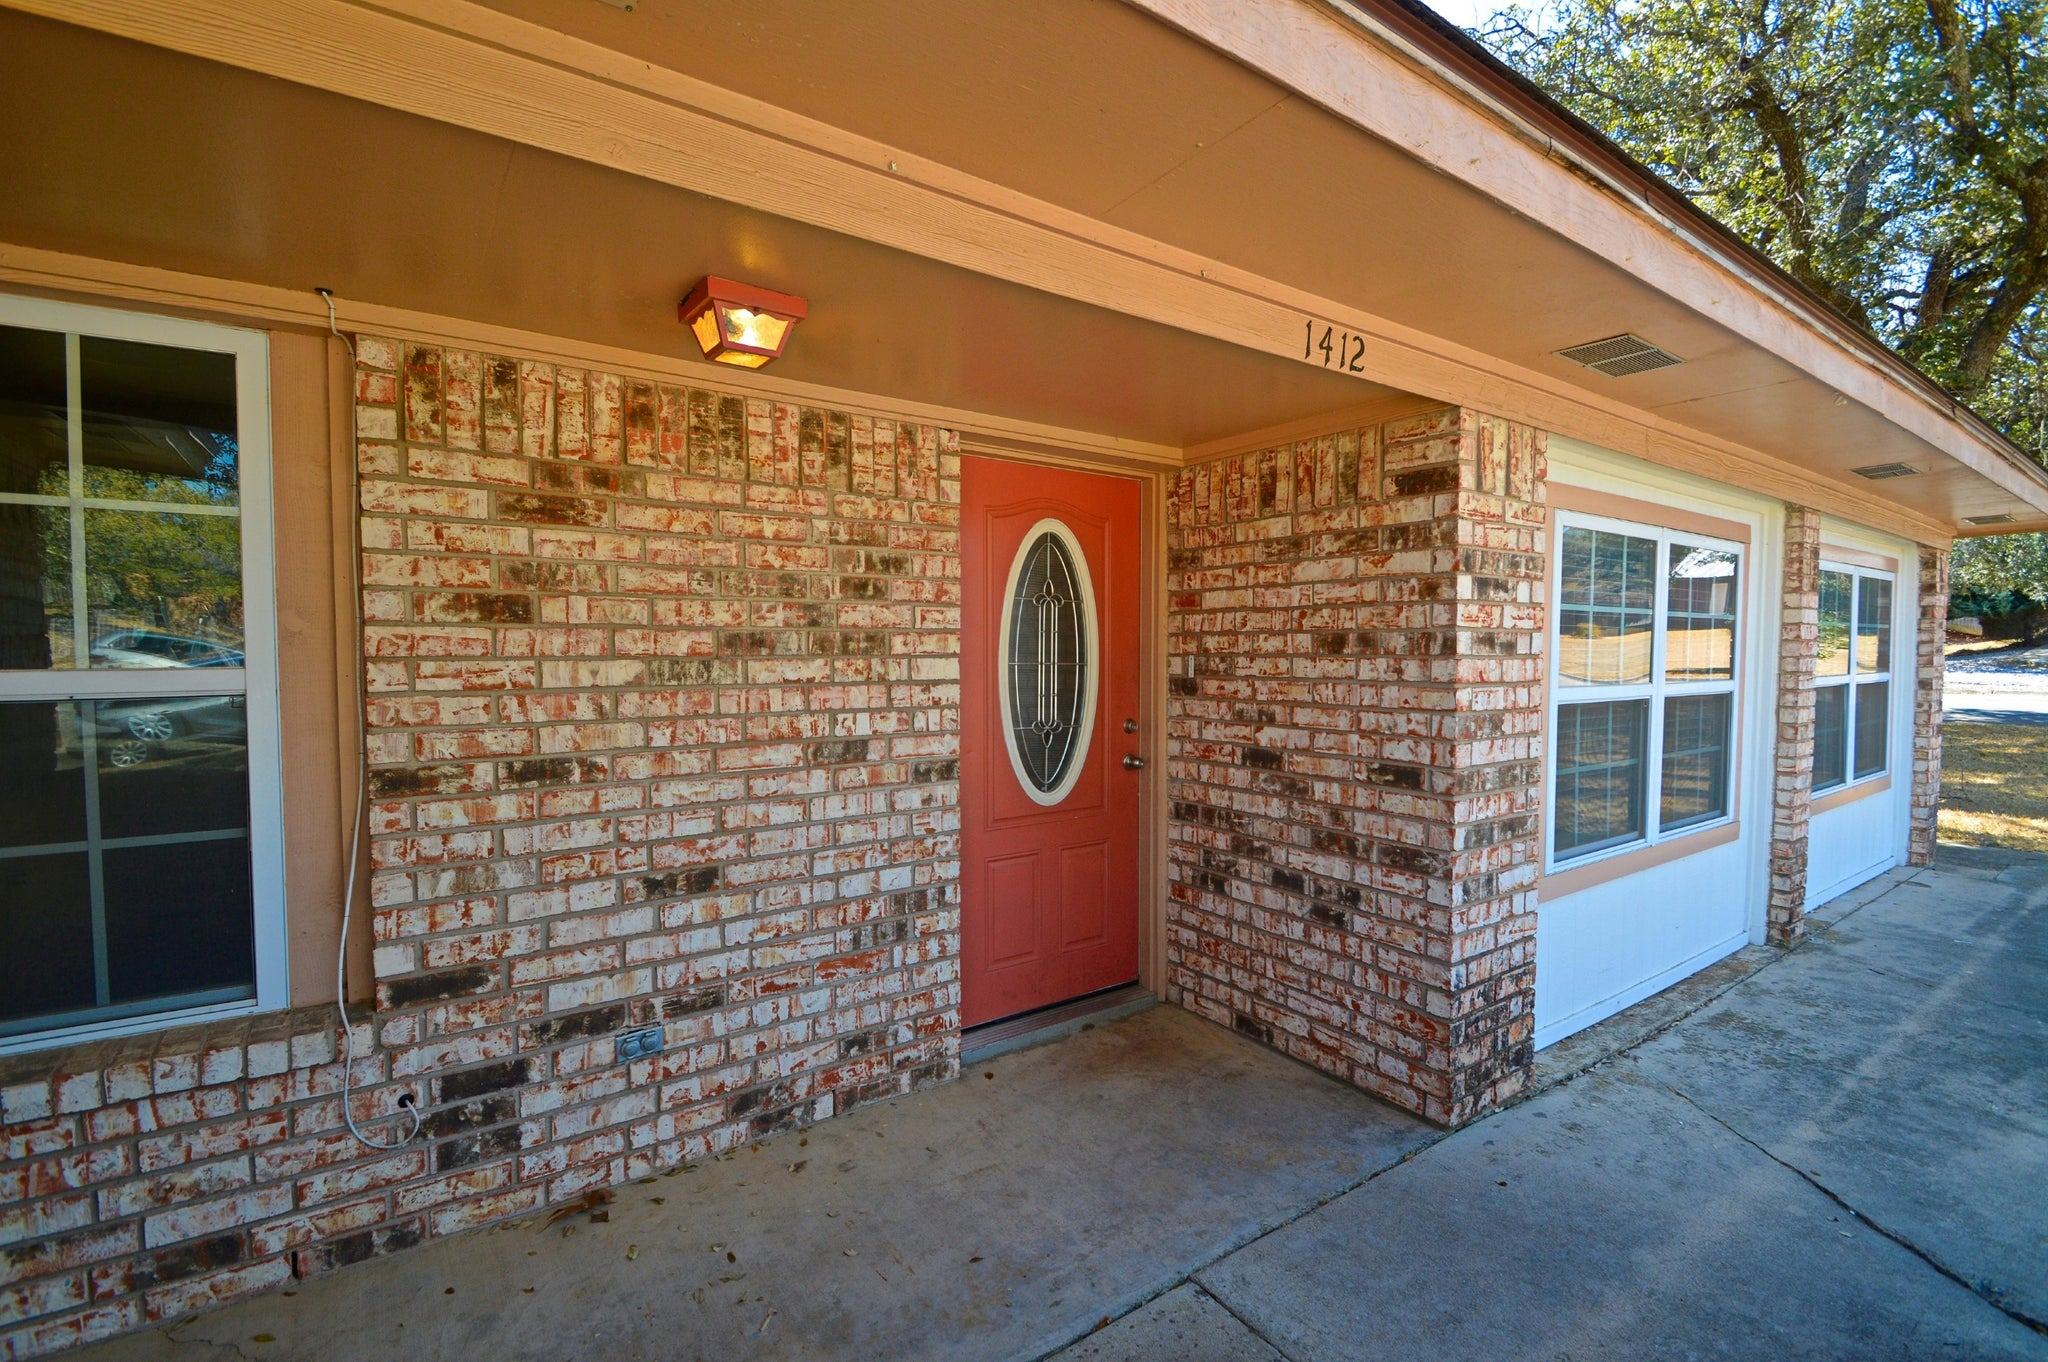 SOLD!  3 Bedroom 2 Bath Brick Home at 1412 West Ave C ,  Lampasas Texas